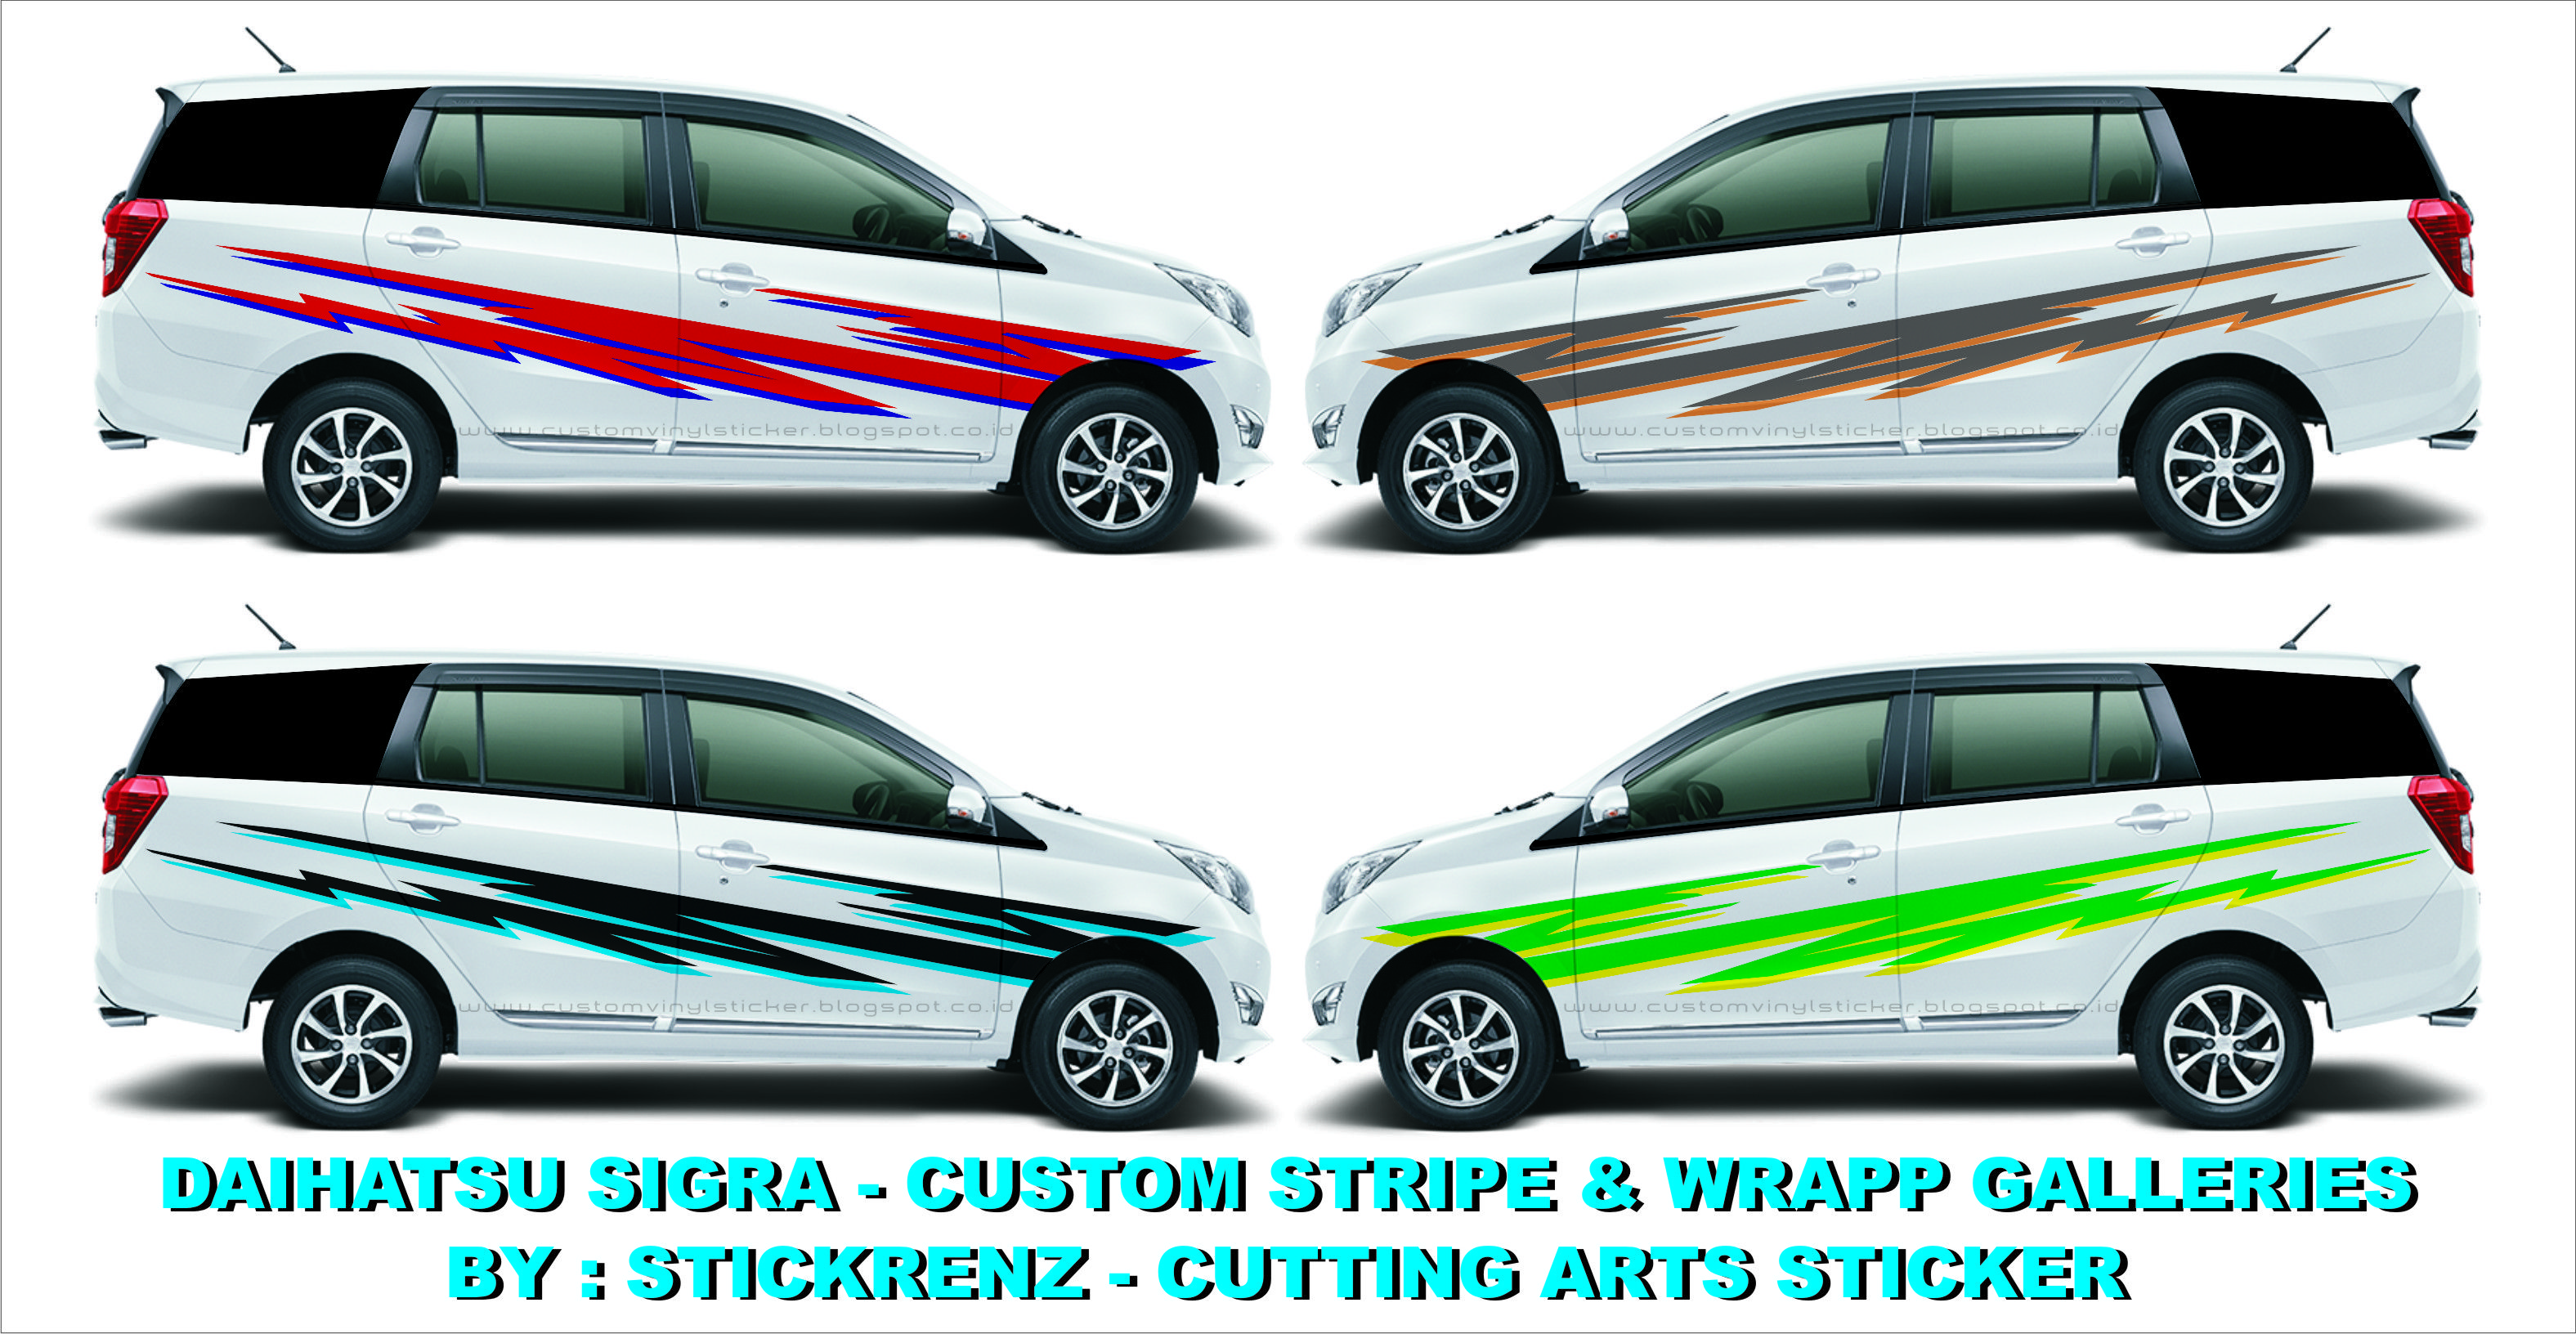 Daihatsu Sigra Custom Stripe Wrapp Concept Galleries 003